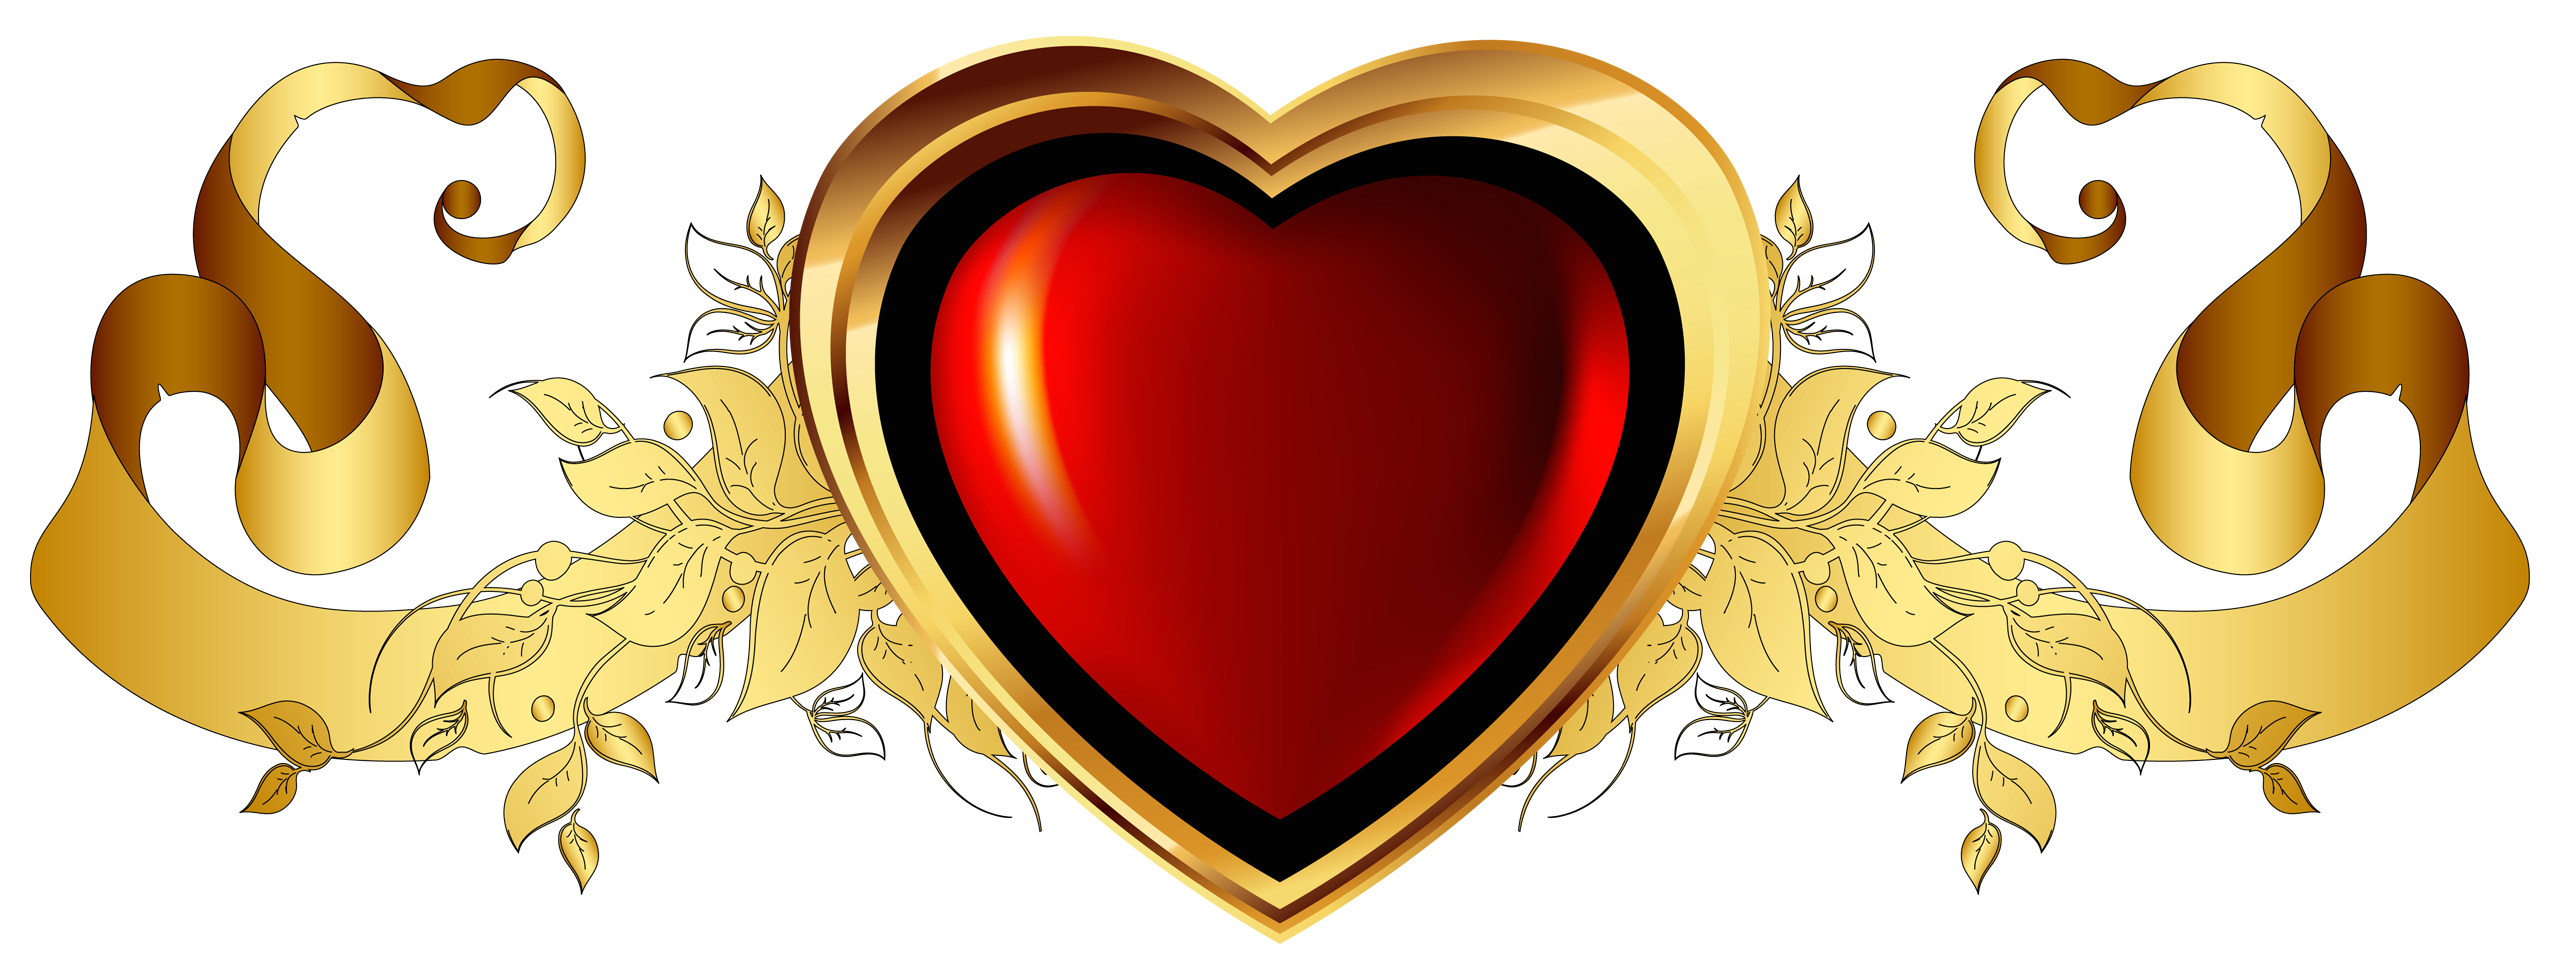 Waves clipart heart. Large red with gold